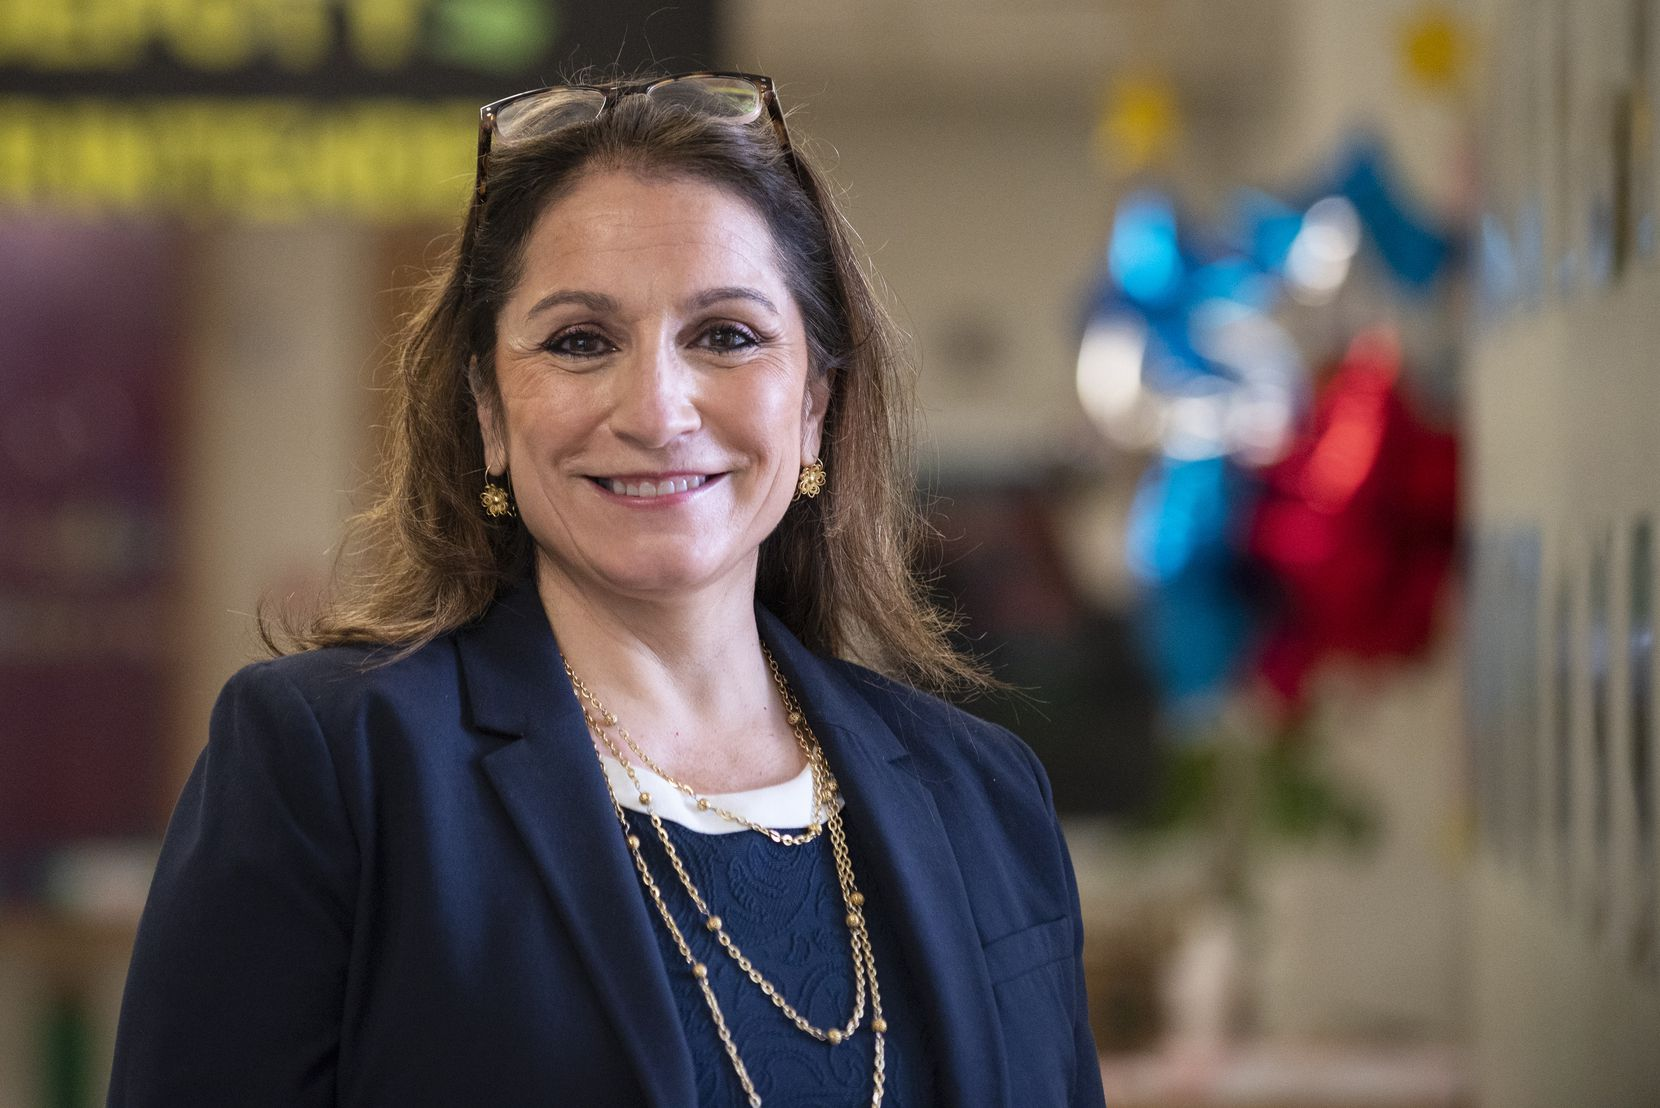 Susana Cordova, DISD deputy superintendent, is getting to know her new district by touring campuses and meeting the leaders, teachers and students at each.